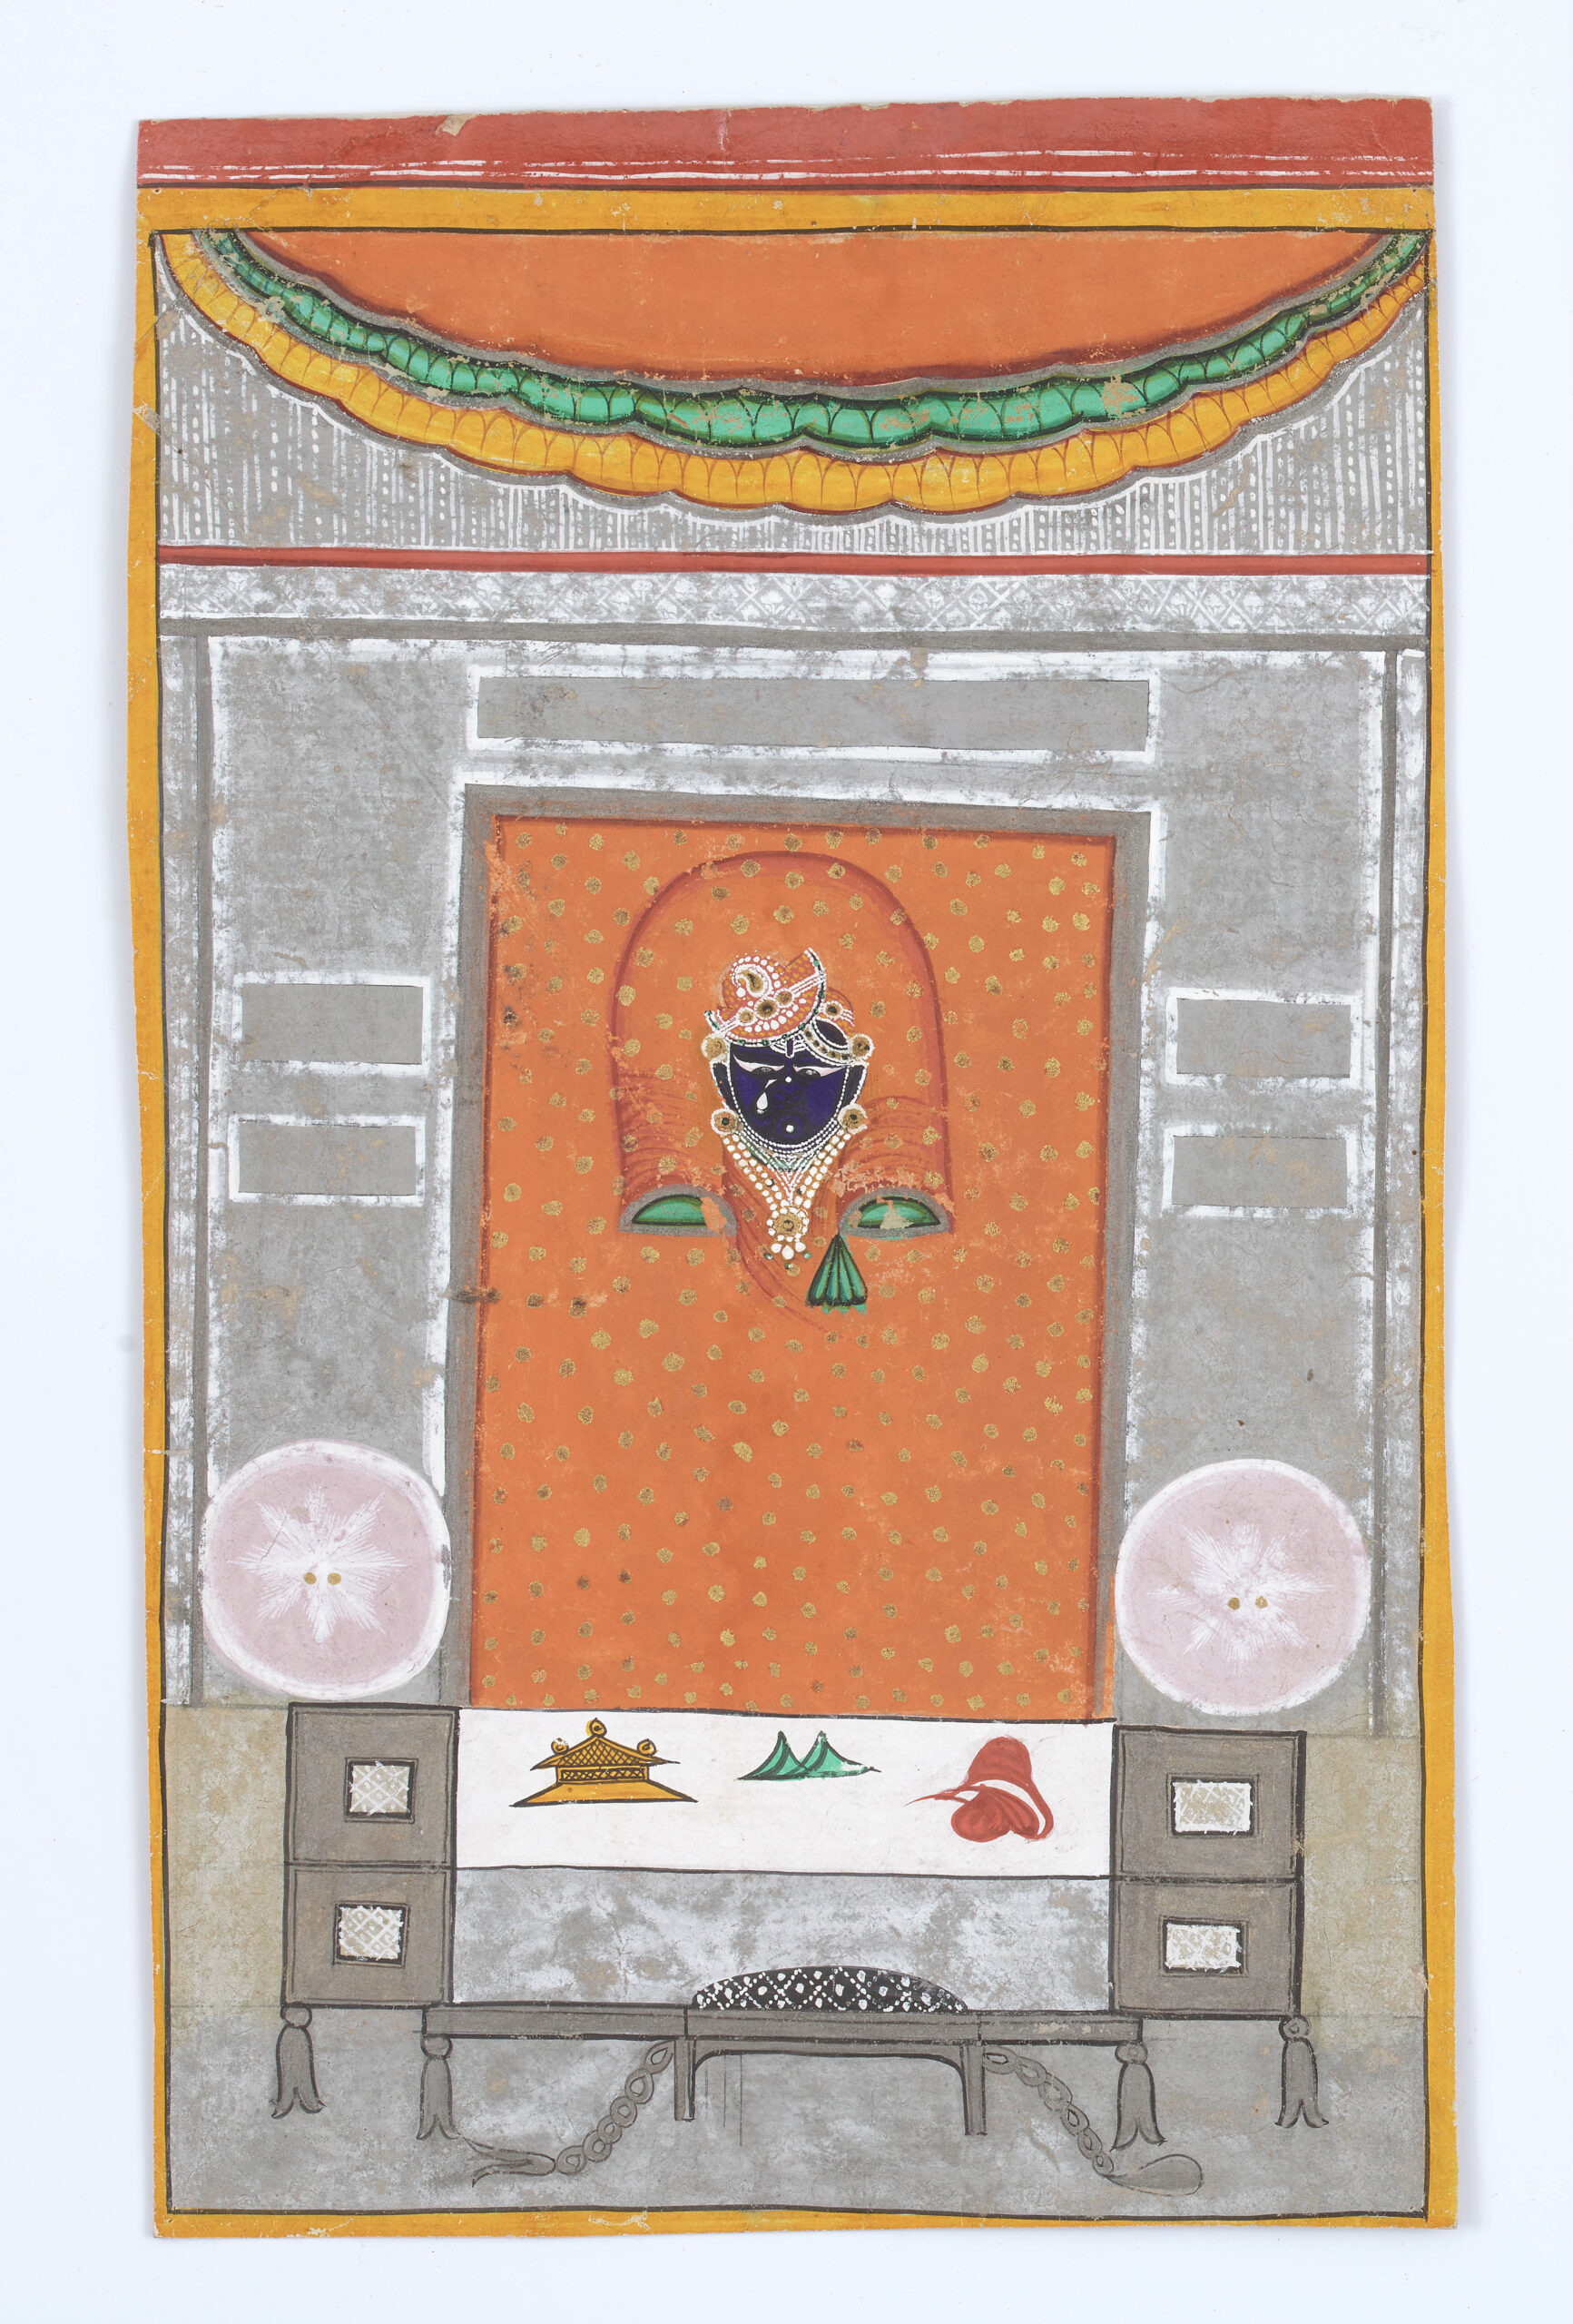 Winter shringara of Shrinathji Nathdwara, Rajasthan, India, Mid-late 19th century Opaque watercolor and gold on paper. Height: 28.5 cm, 11 ¼ in Width: 17.5 cm, 7 in